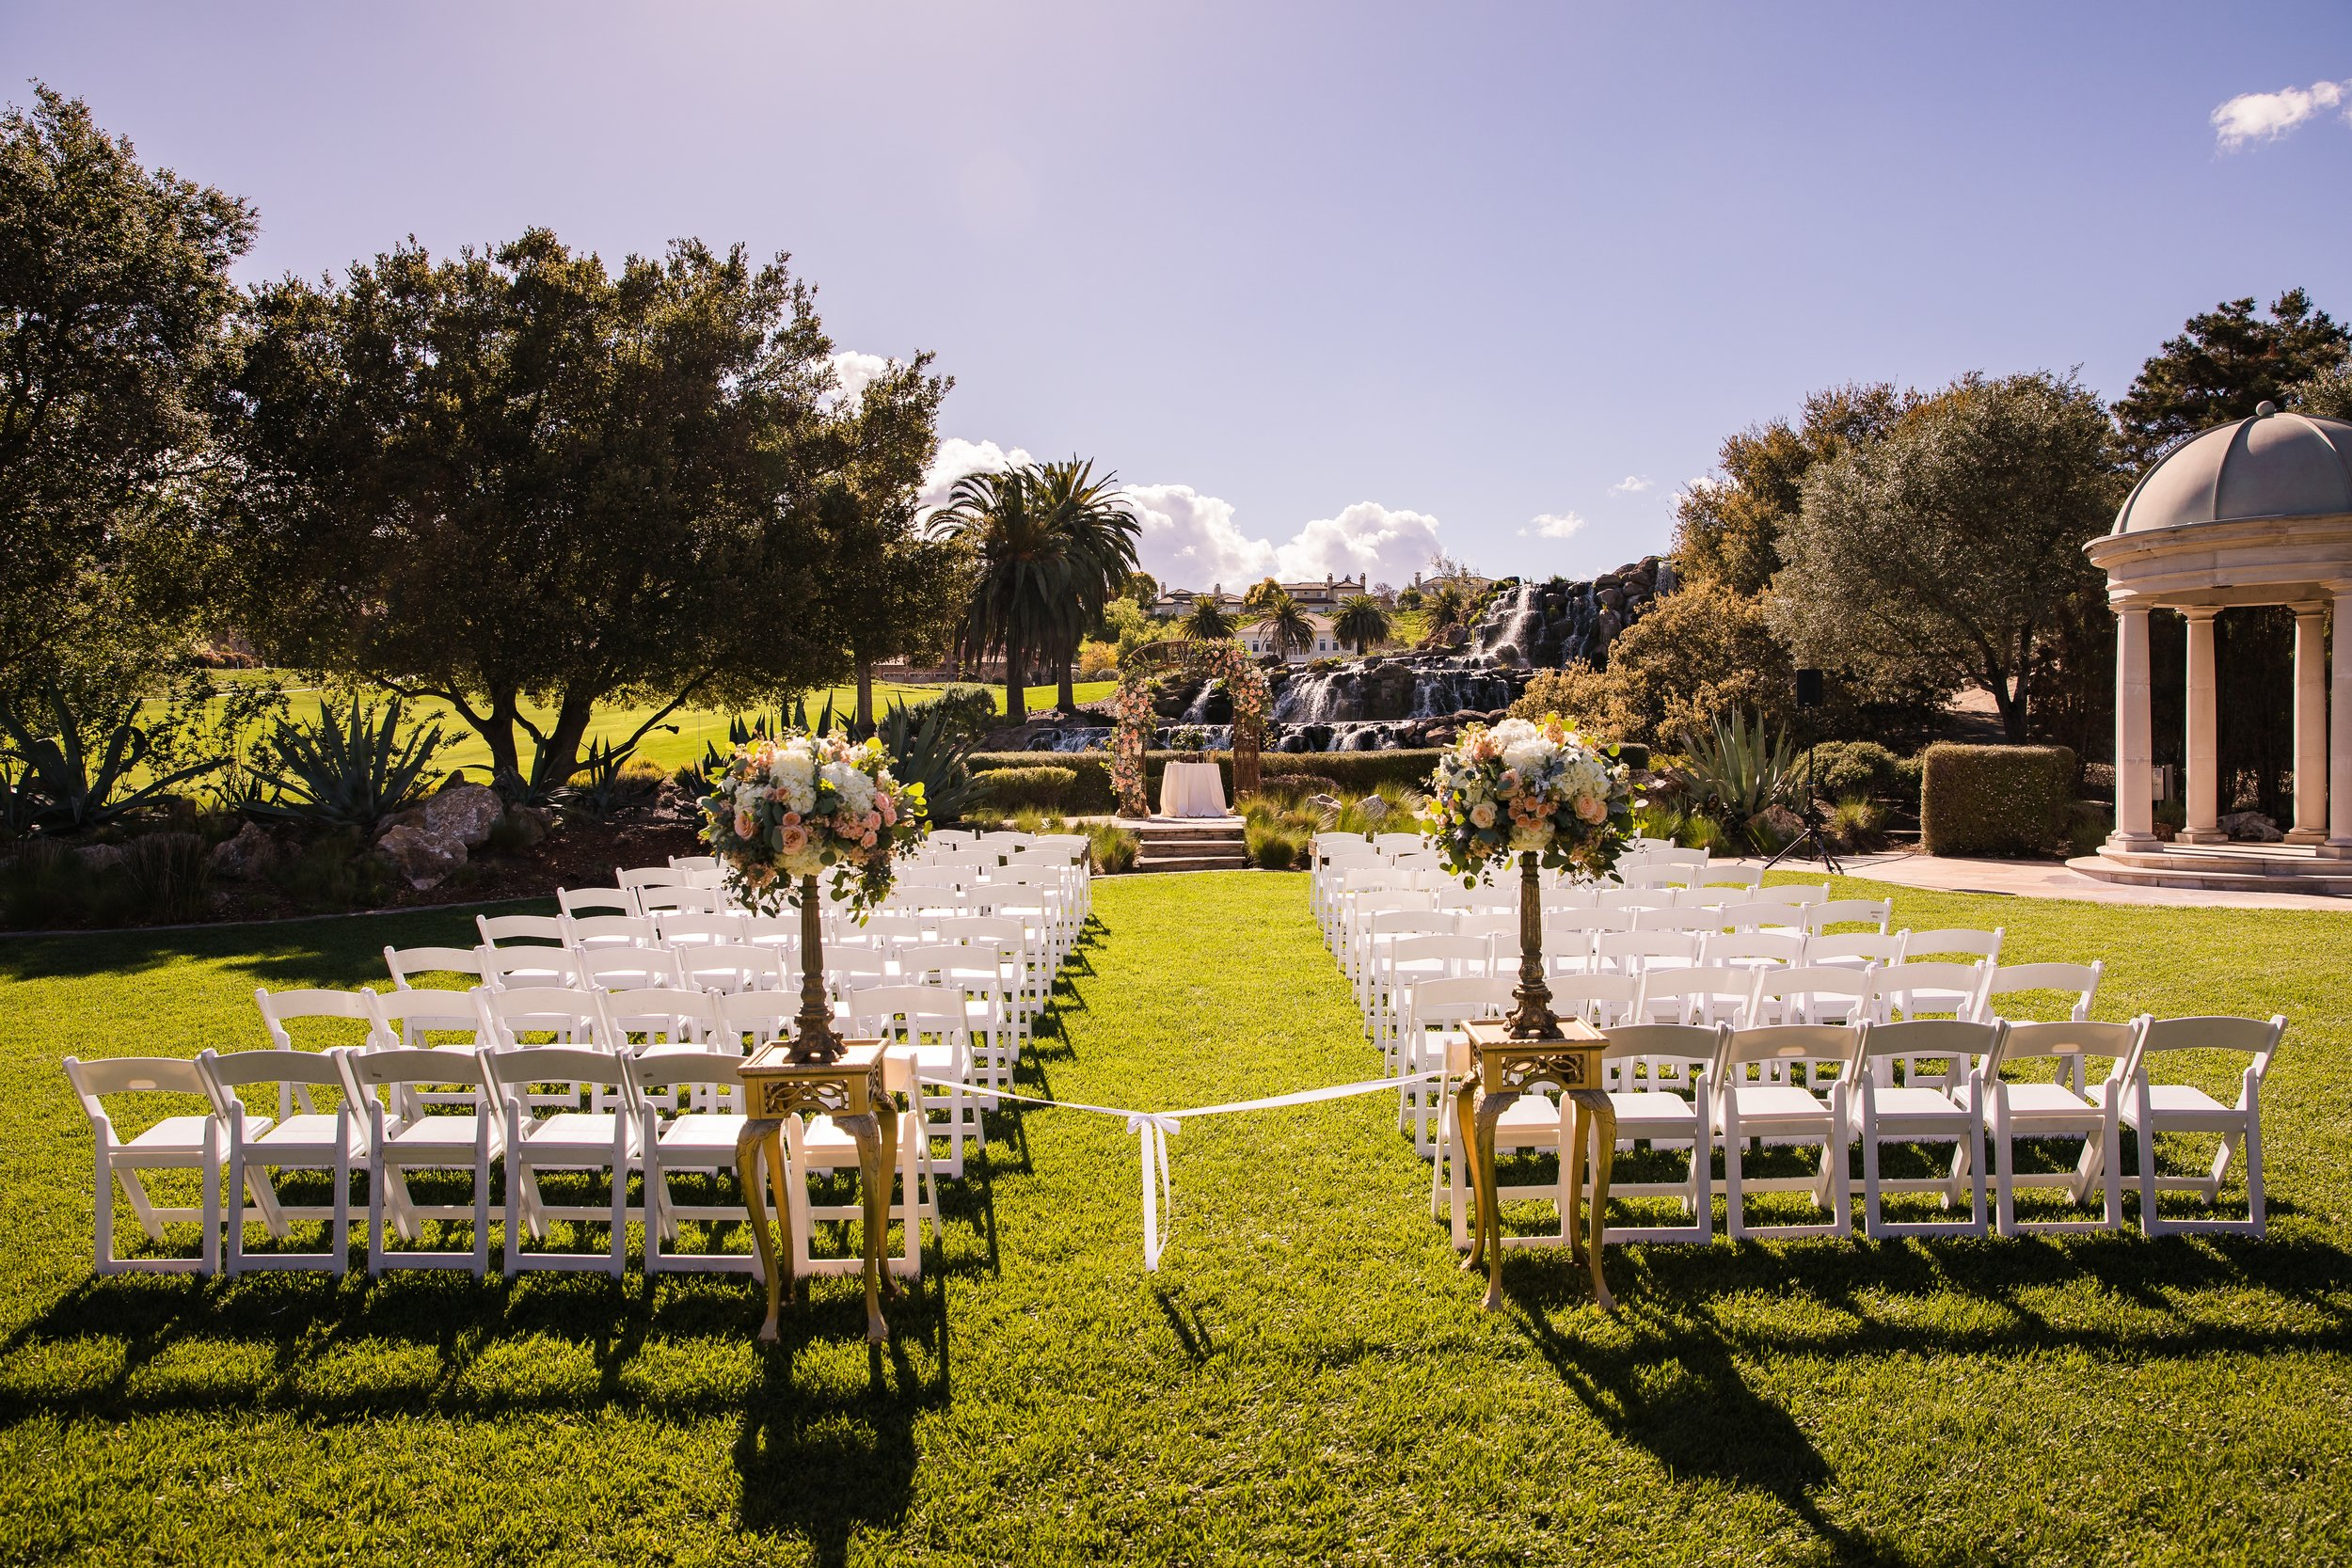 0339-WA-Silver-Creek-Valley-Country-Club-San-Jose-Wedding-Photography-small.jpg